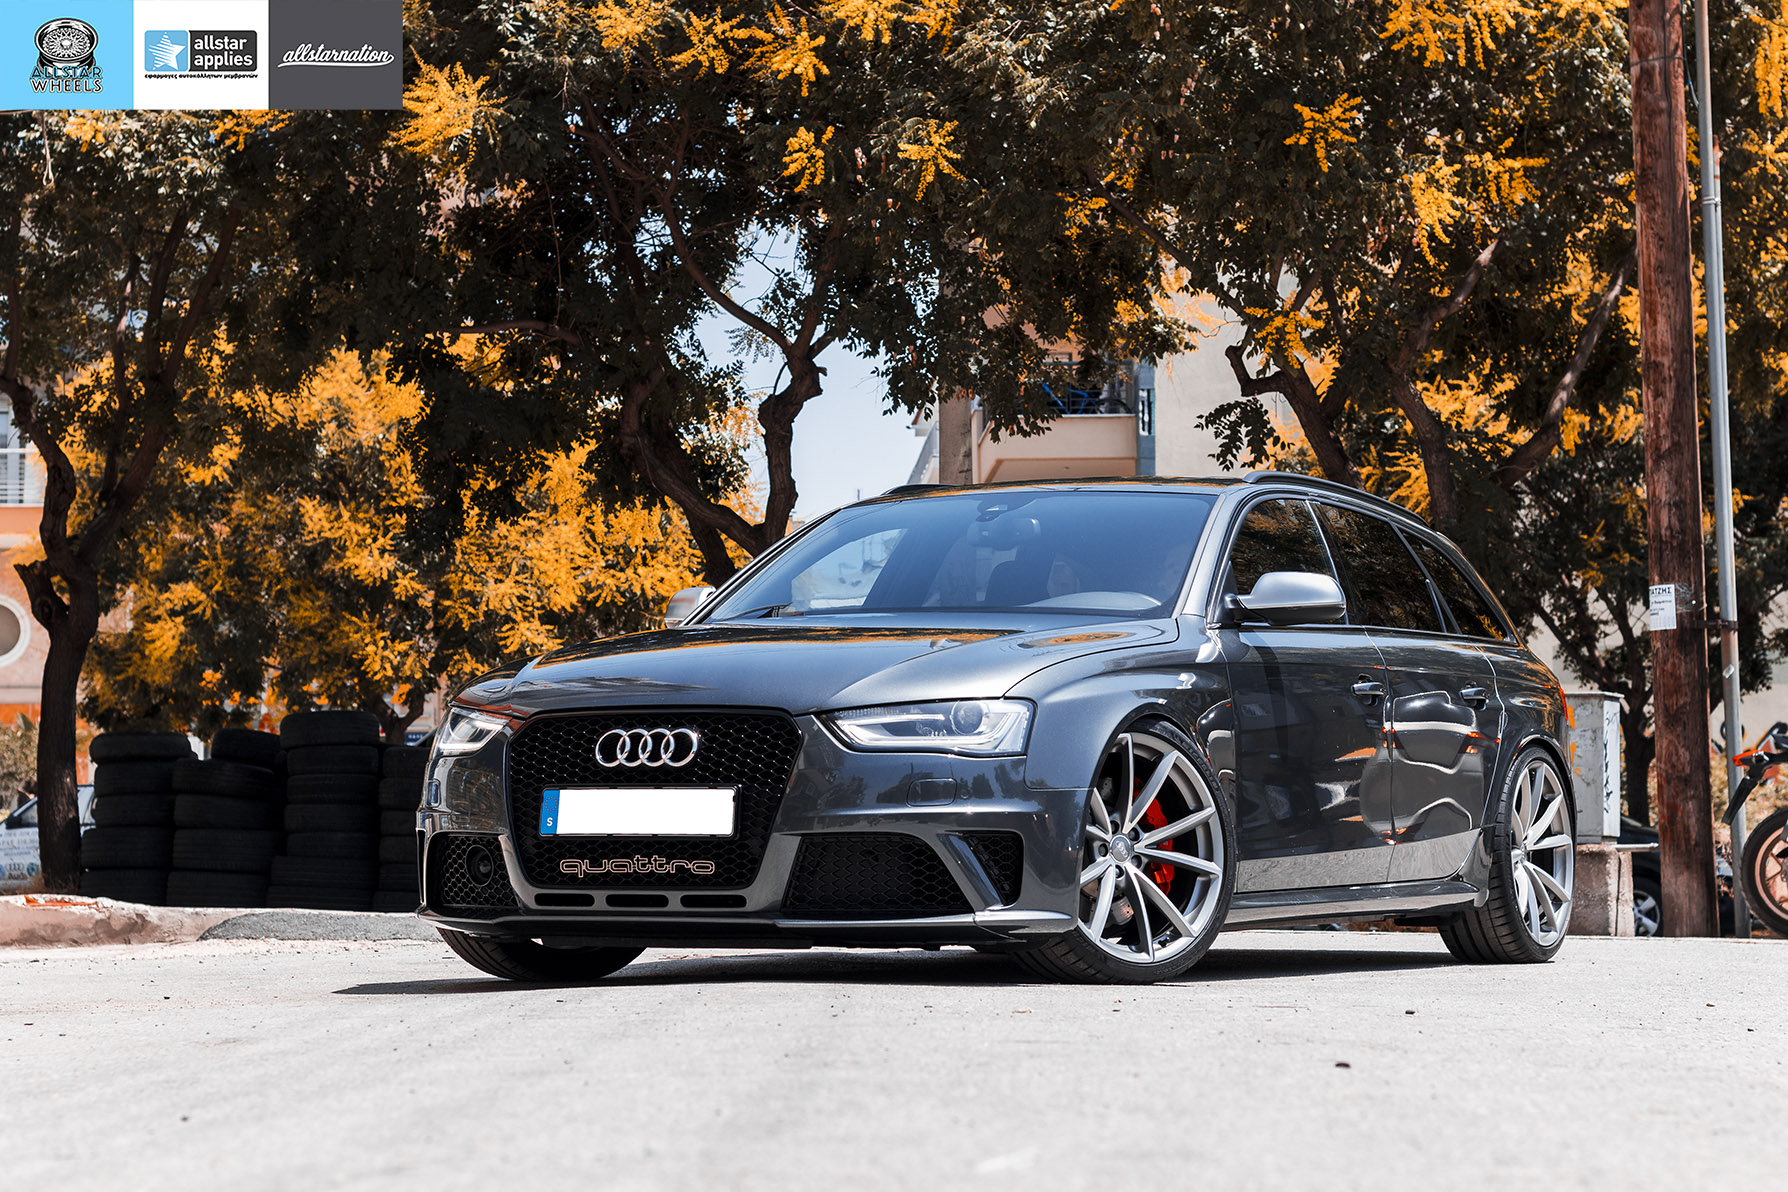 audi rs4 avant allstar applies PPF (4)